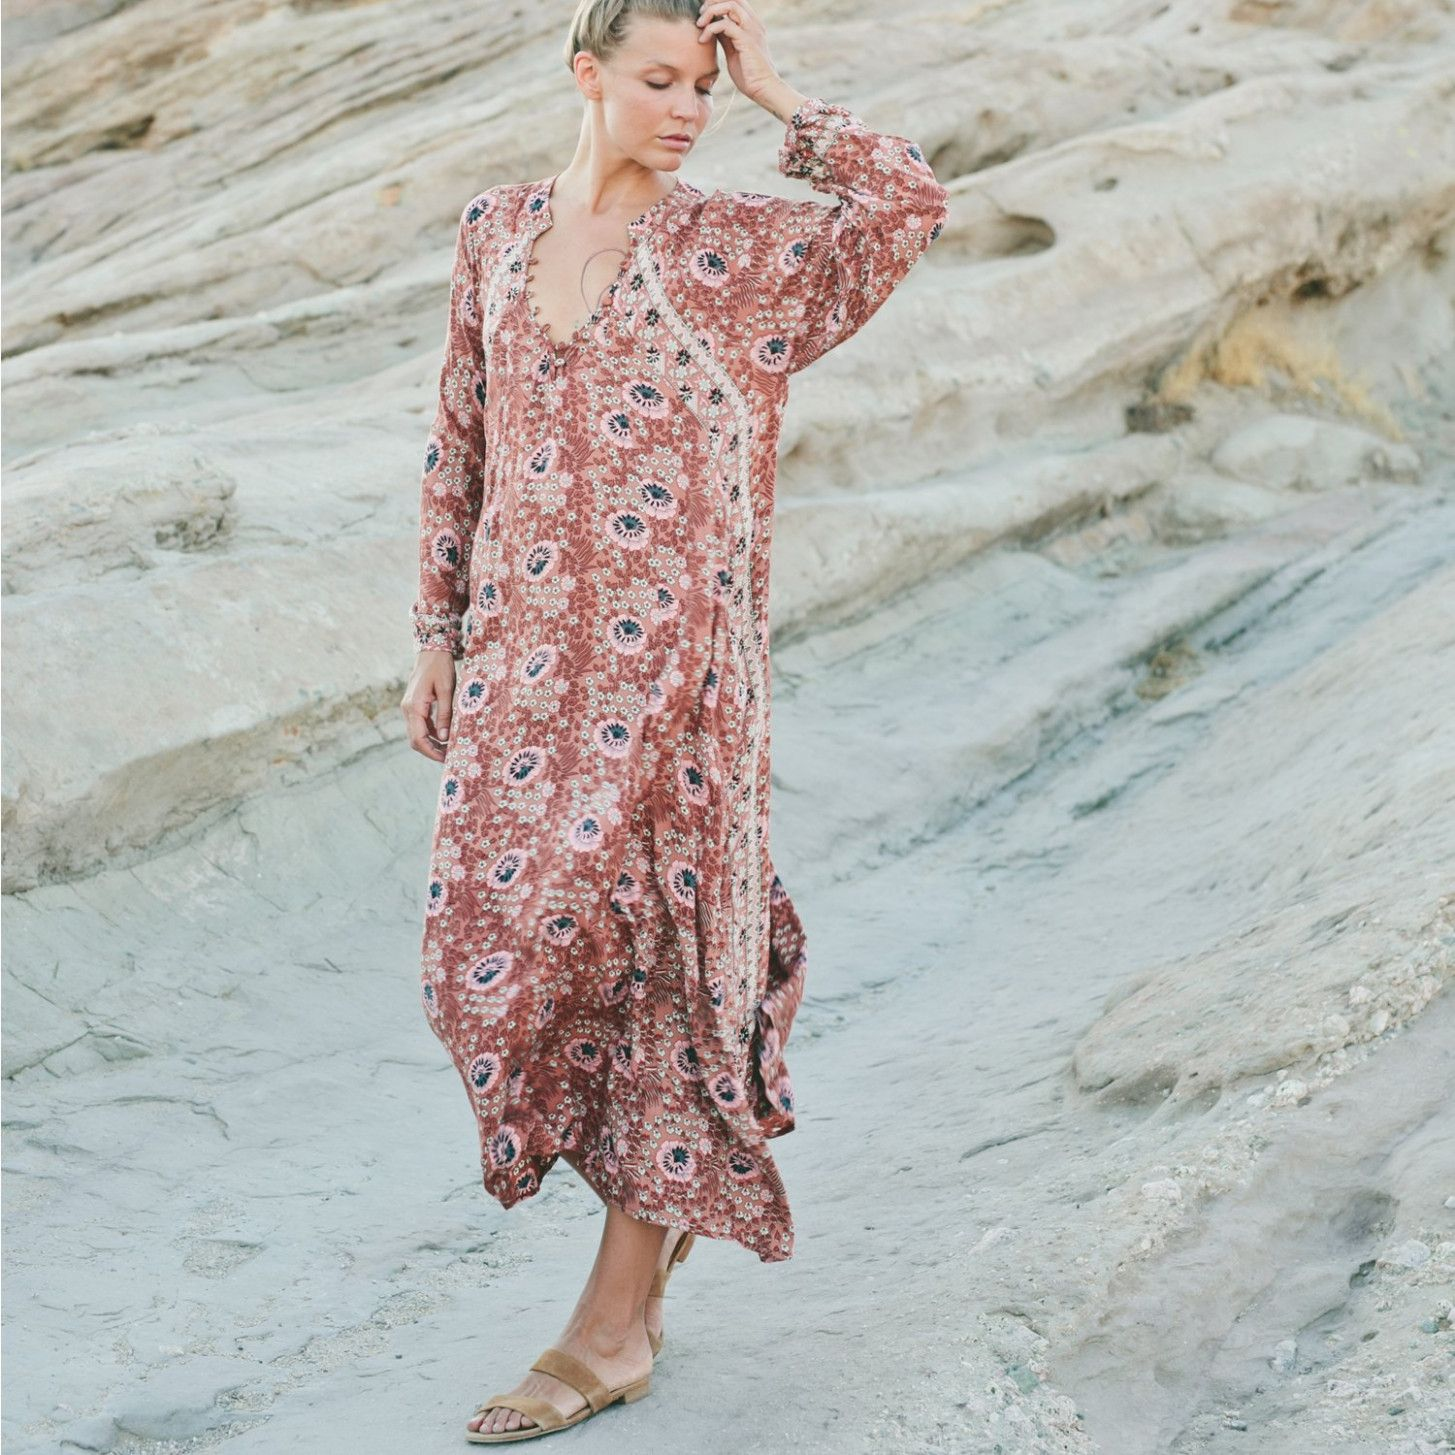 Five Common Mistakes Everyone Makes In Natalie Martin Fiore Maxi Dress Natalie Martin Fiore Maxi Dress Https Maxi Dress Vintage Maxi Dress Sage Maxi Dress [ 1455 x 1455 Pixel ]